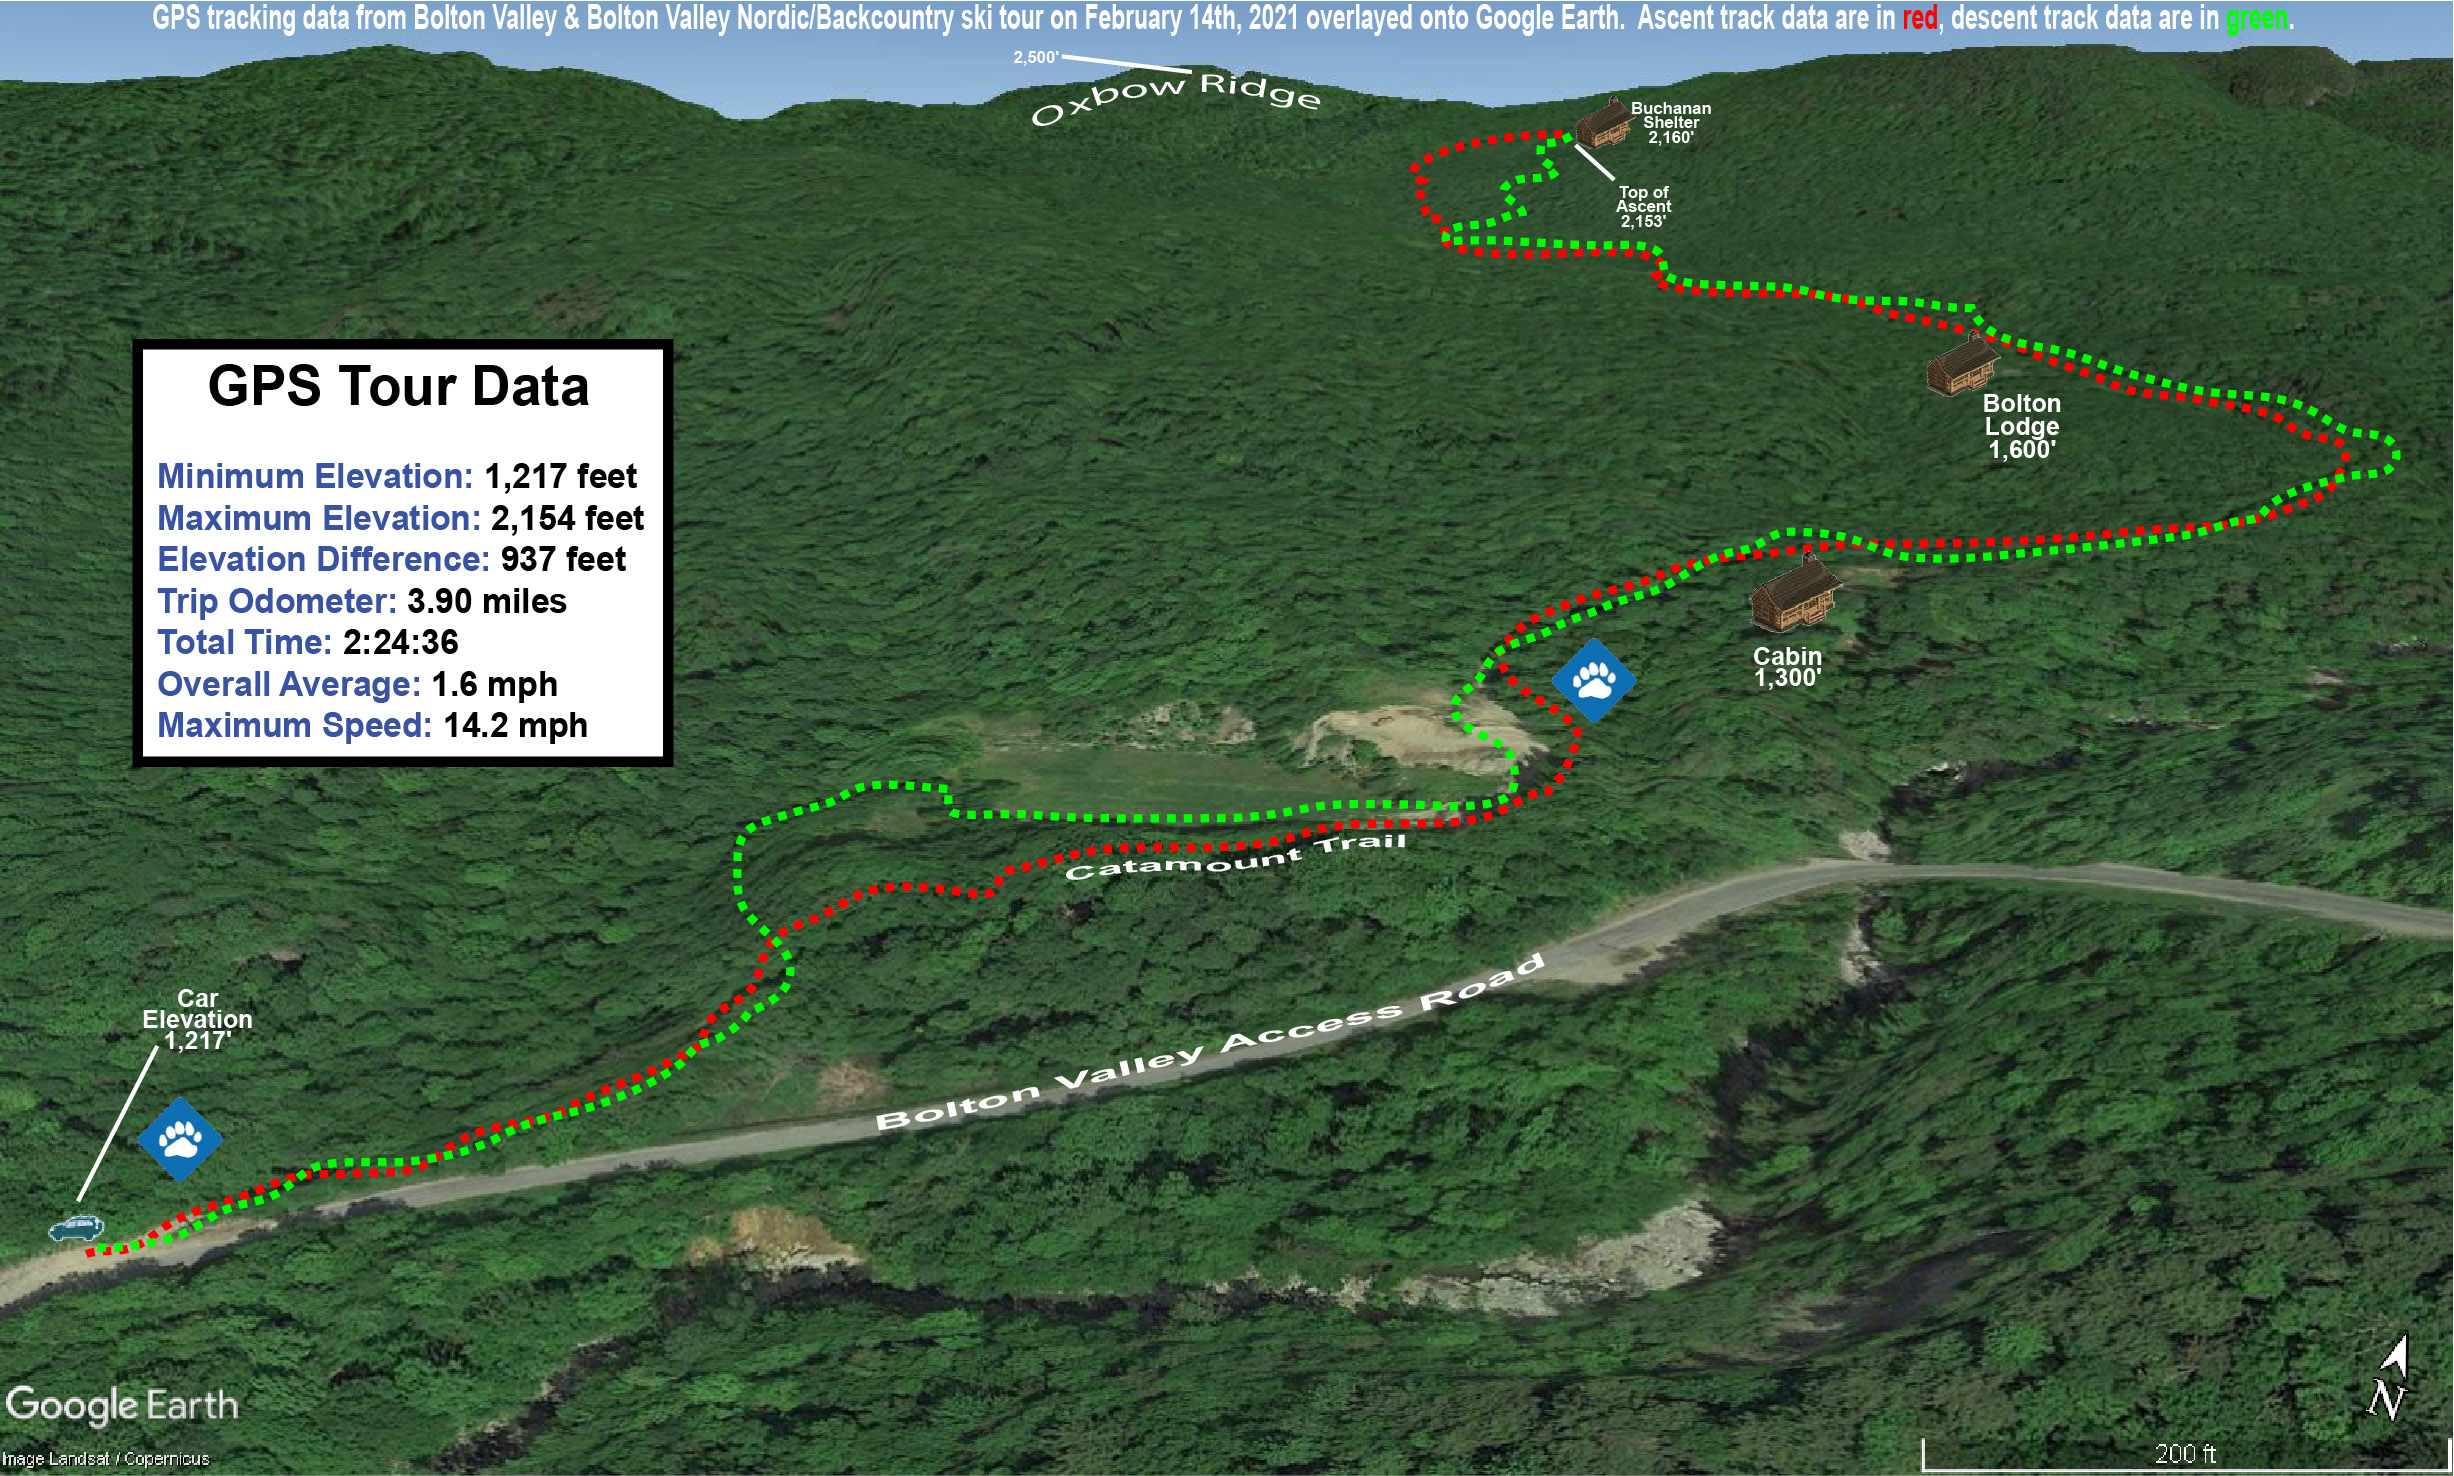 A Google Earth map showing GPS tracking data for a ski tour on the Nordic & Backcountry Network at Bolton Valley Resort in Vermont